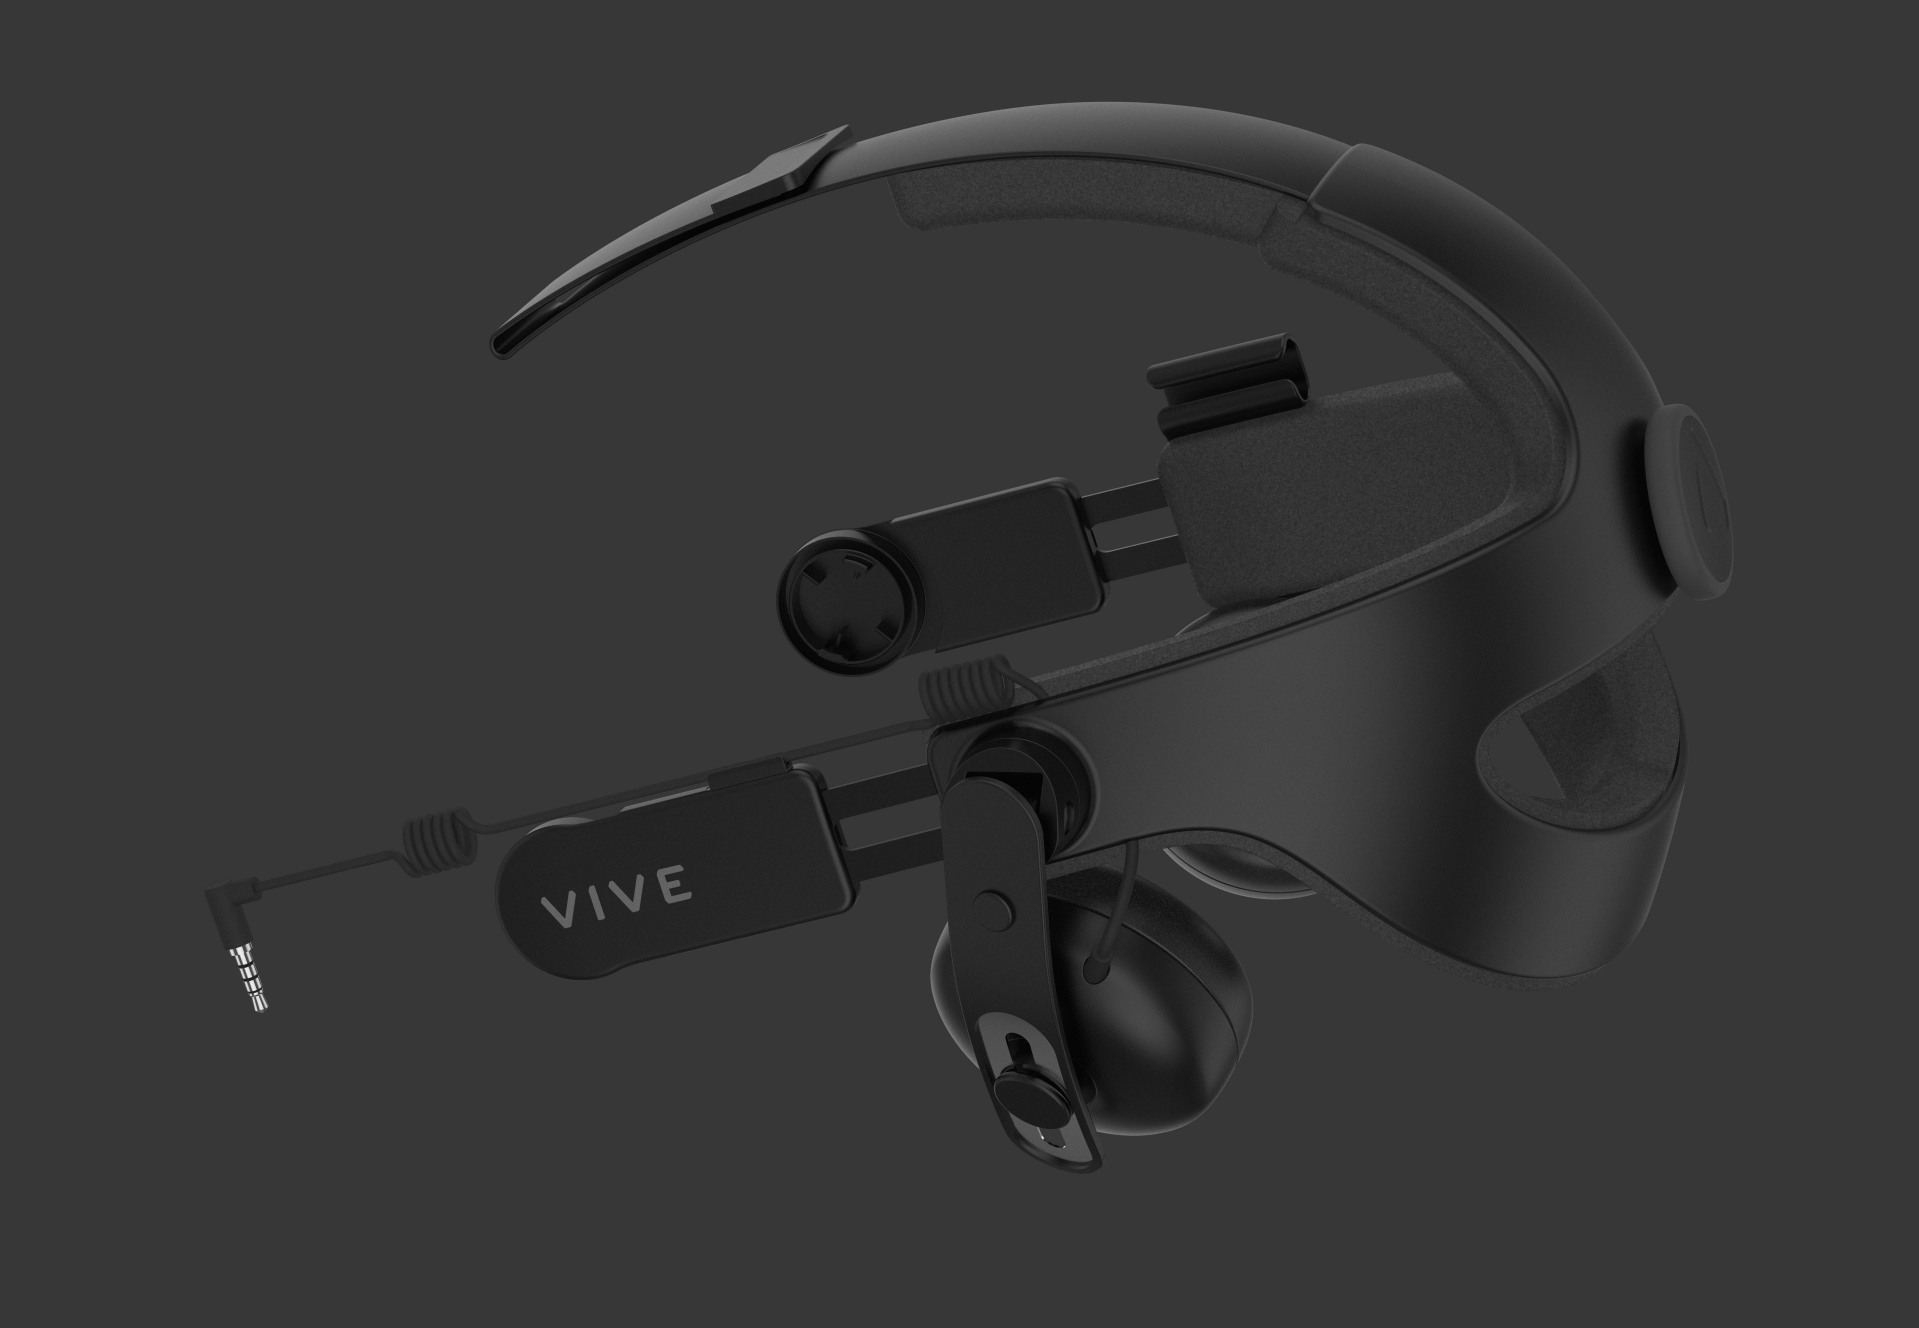 HTC Vive Tracker, Audio Strap & Viveport App Subscription Announced At CES